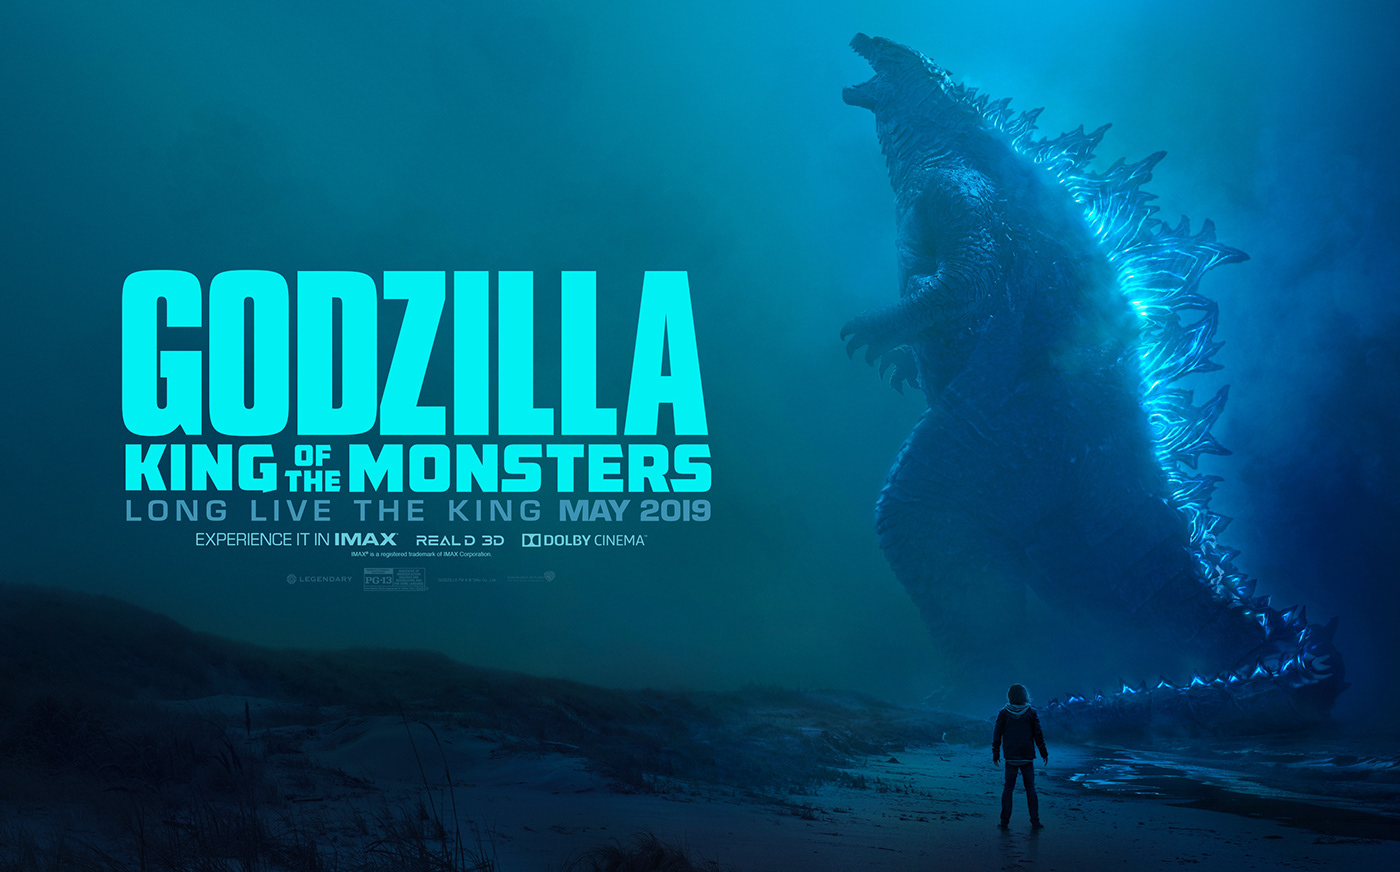 godzilla_king_of_the_monsters_2019_wallpaper_5_by_leivbjerga_dcrfq5i-pre.jpg